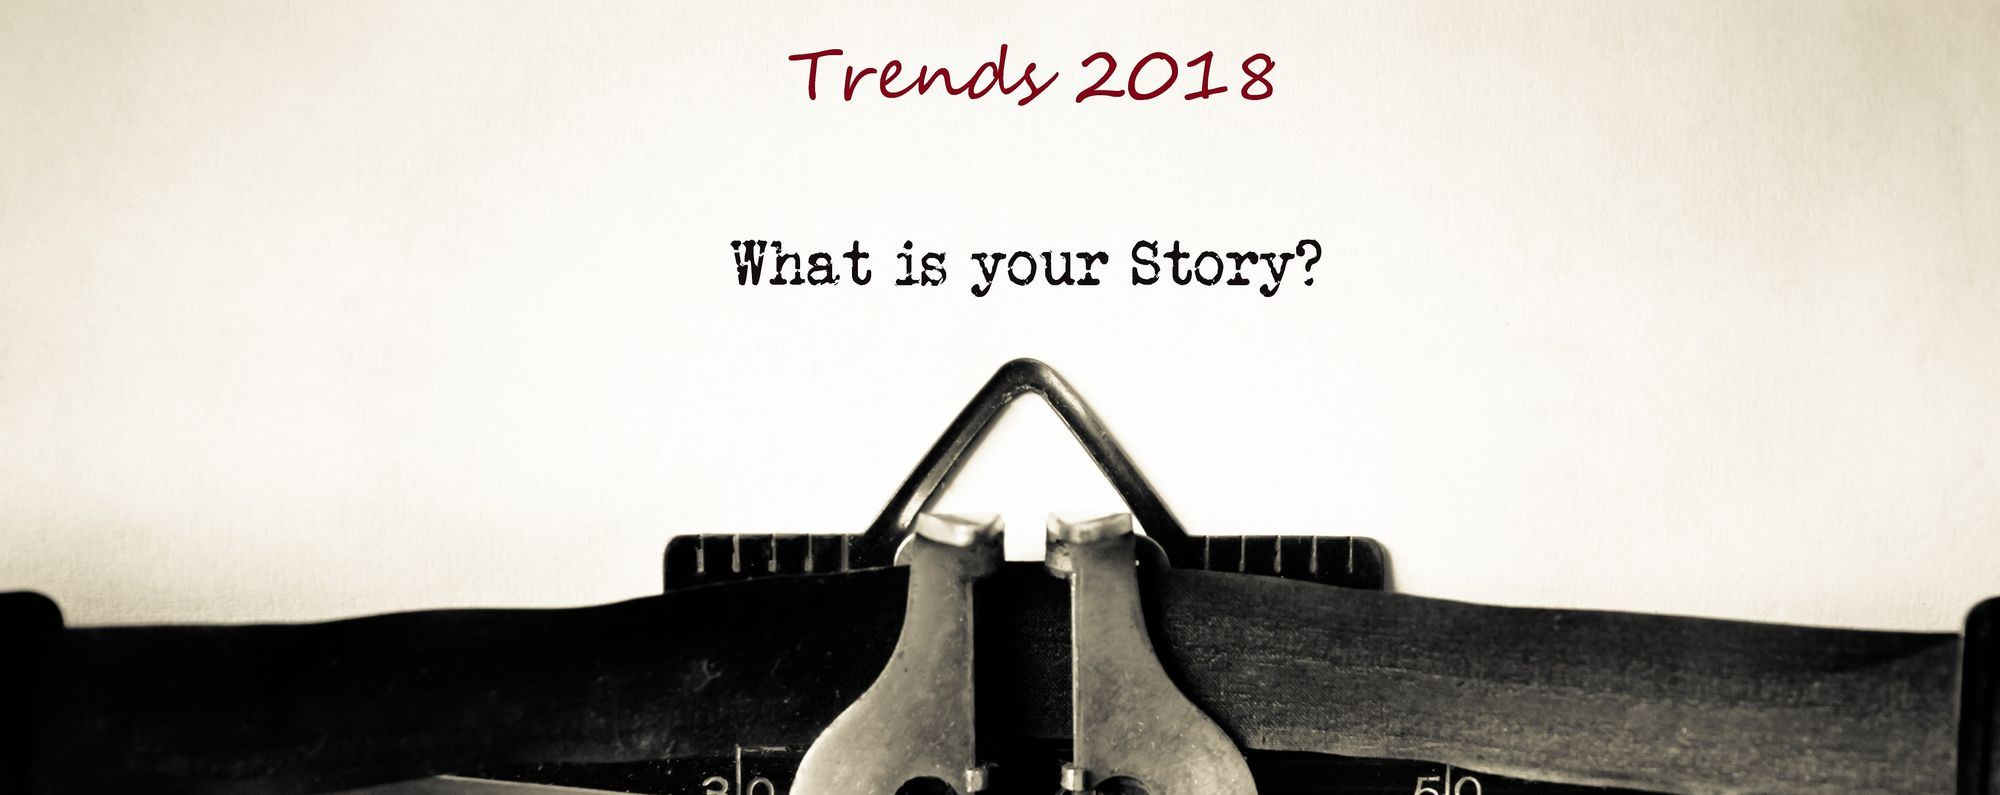 History Marketing Trends 2018